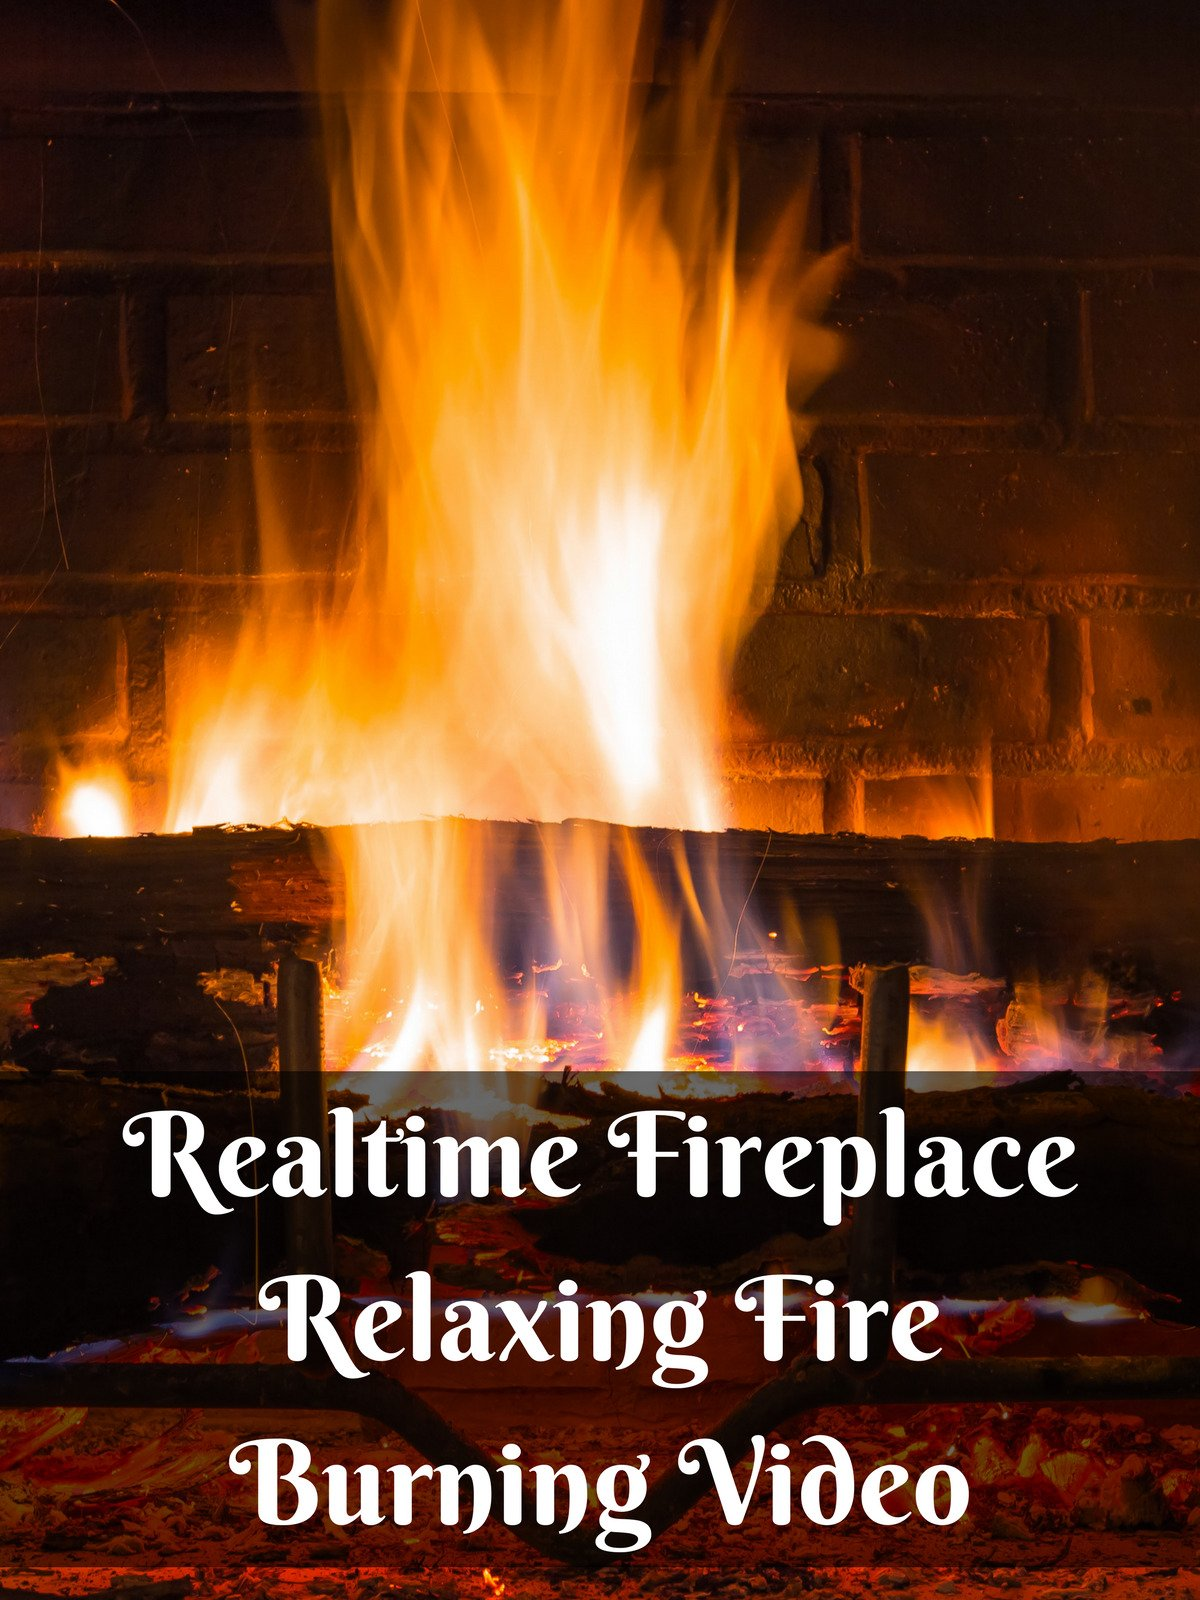 Realtime Fireplace